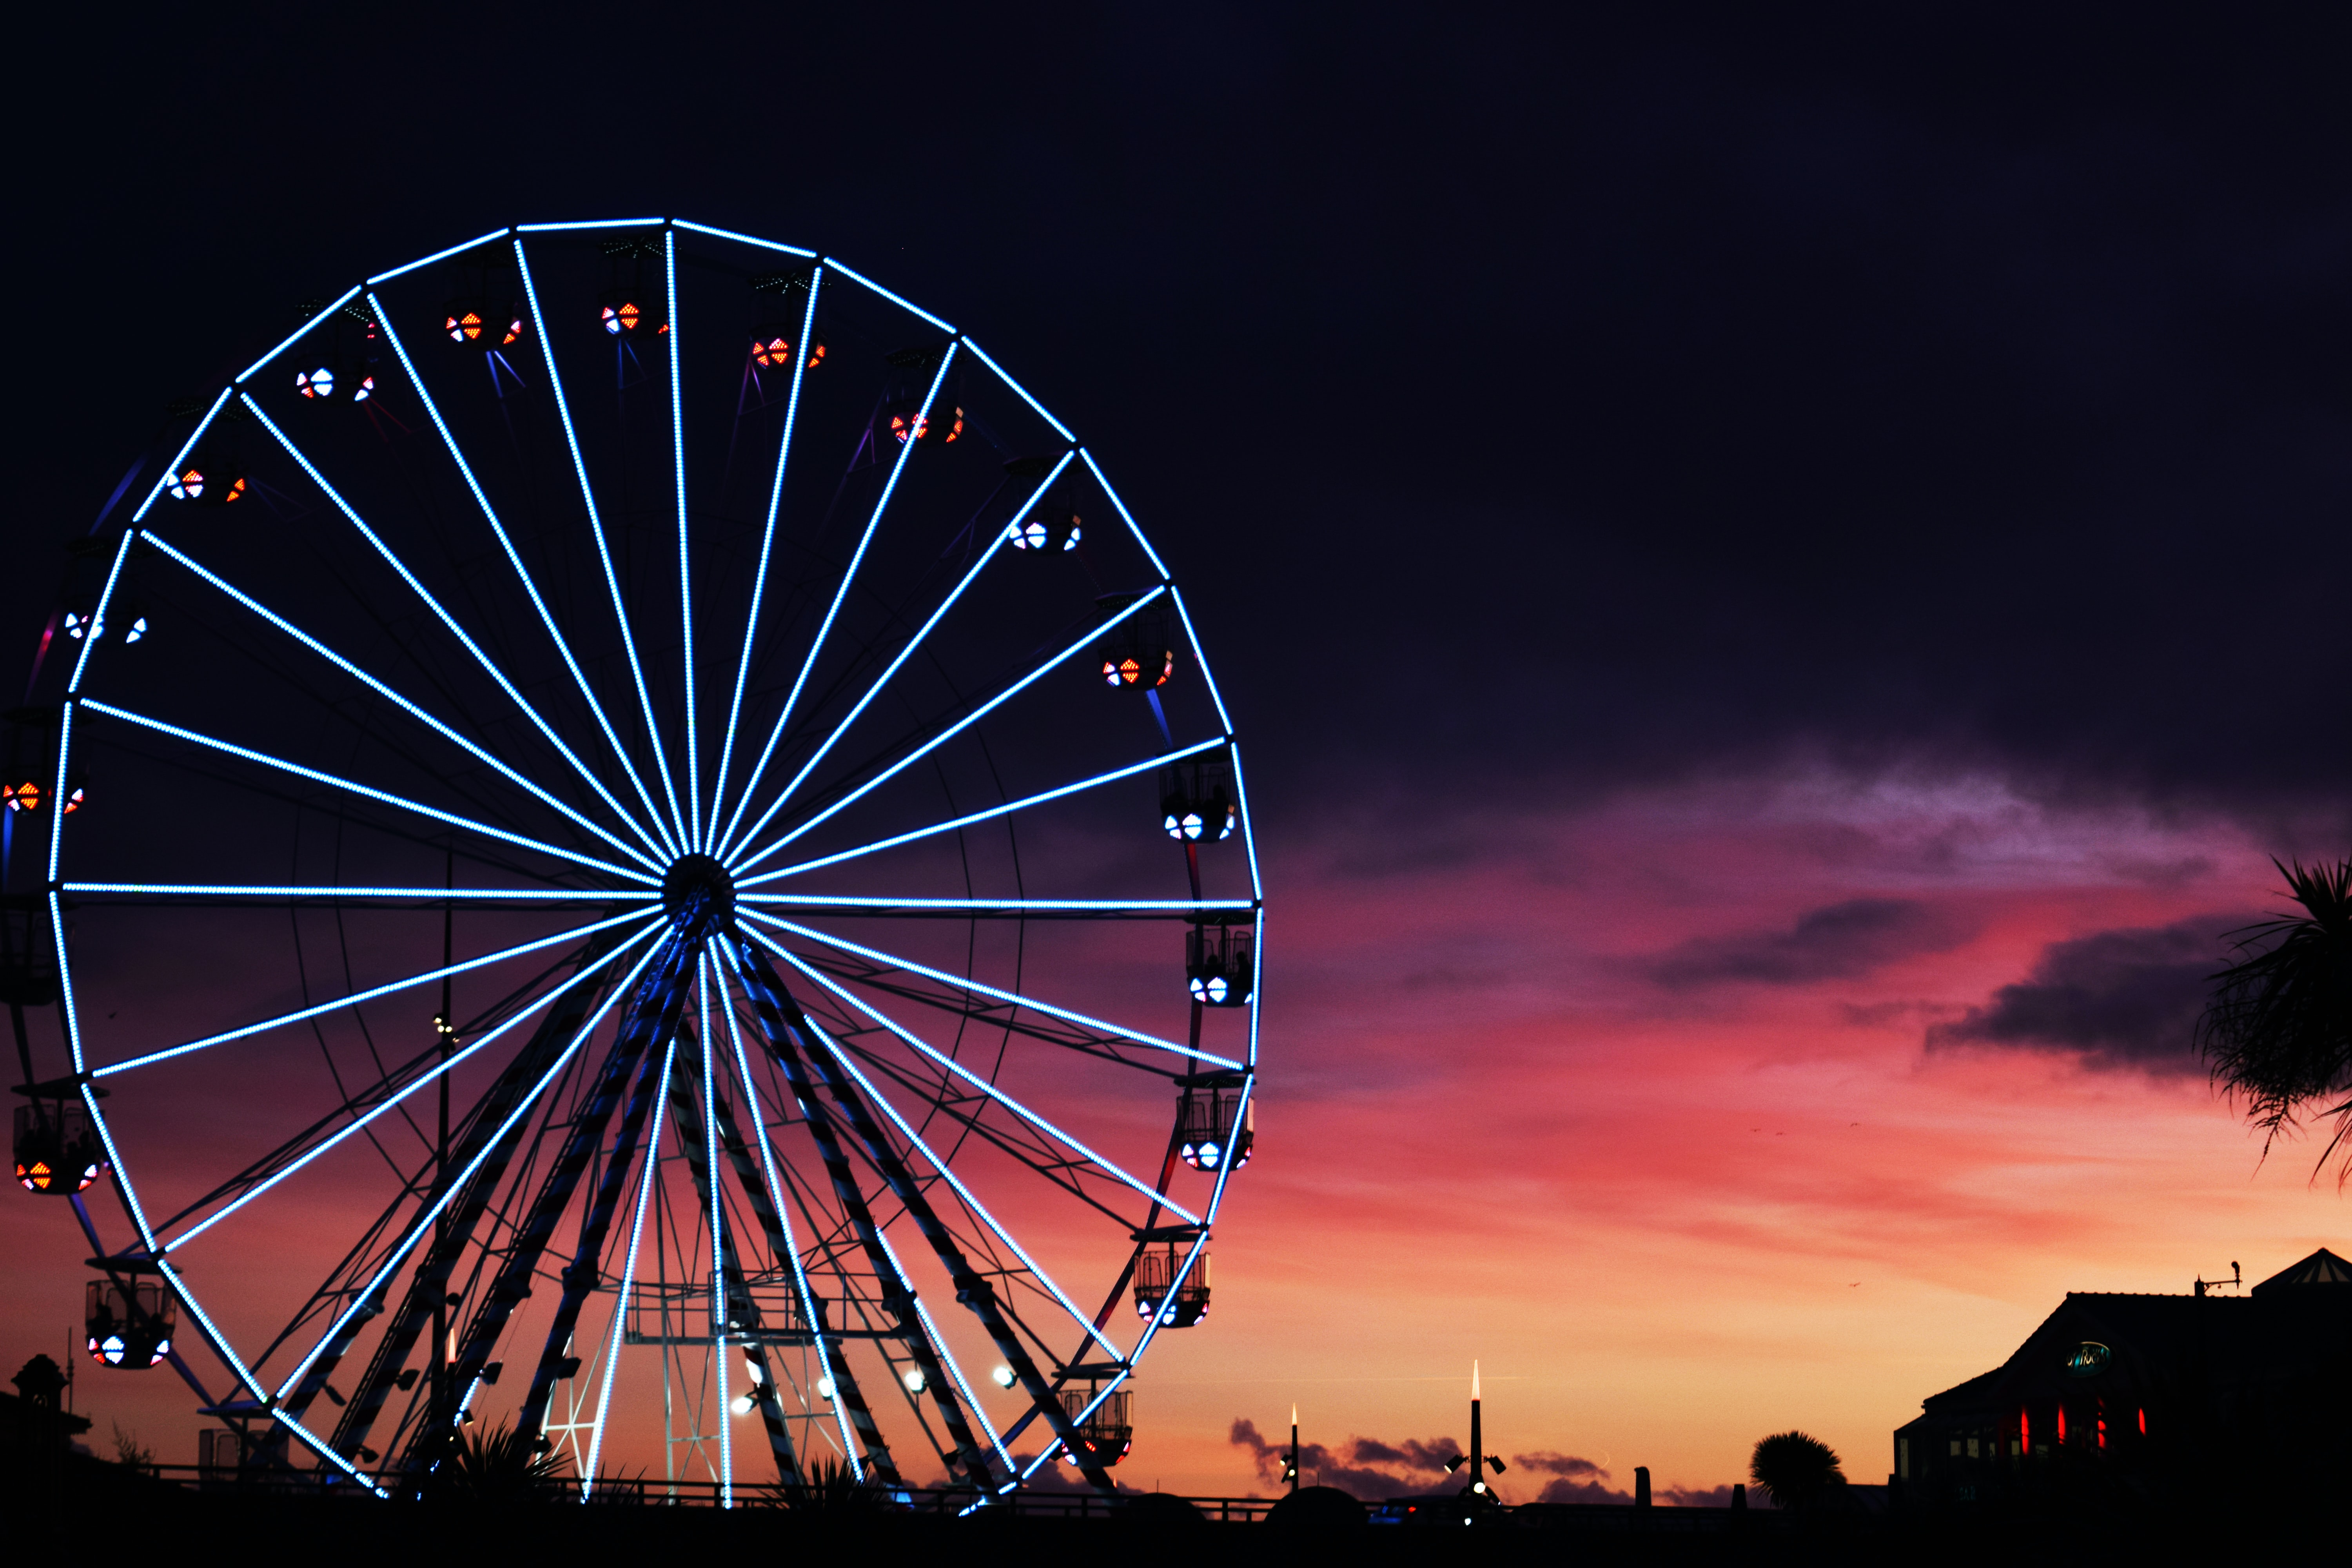 A colourfully illuminated ferris wheel turning in front of a purple and orange sunset in Bournemouth